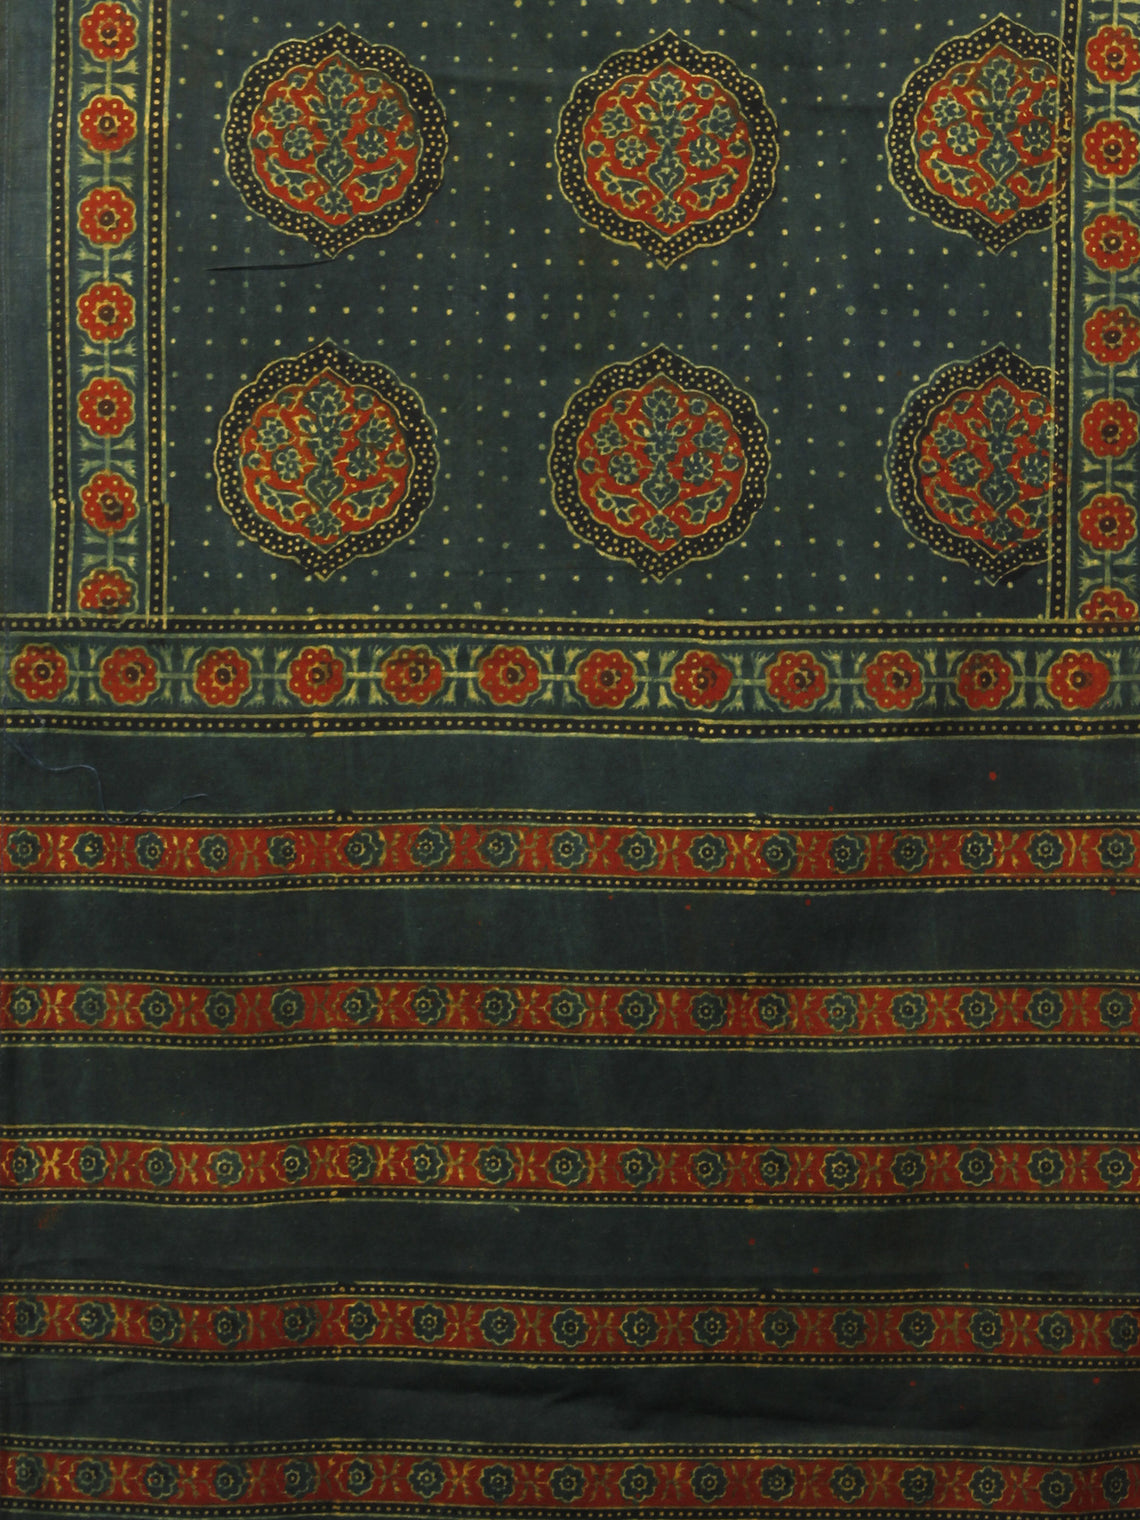 Dark Green Maroon Black Mughal Nakashi Ajrakh Hand Block Printed Cotton Stole - S63170129